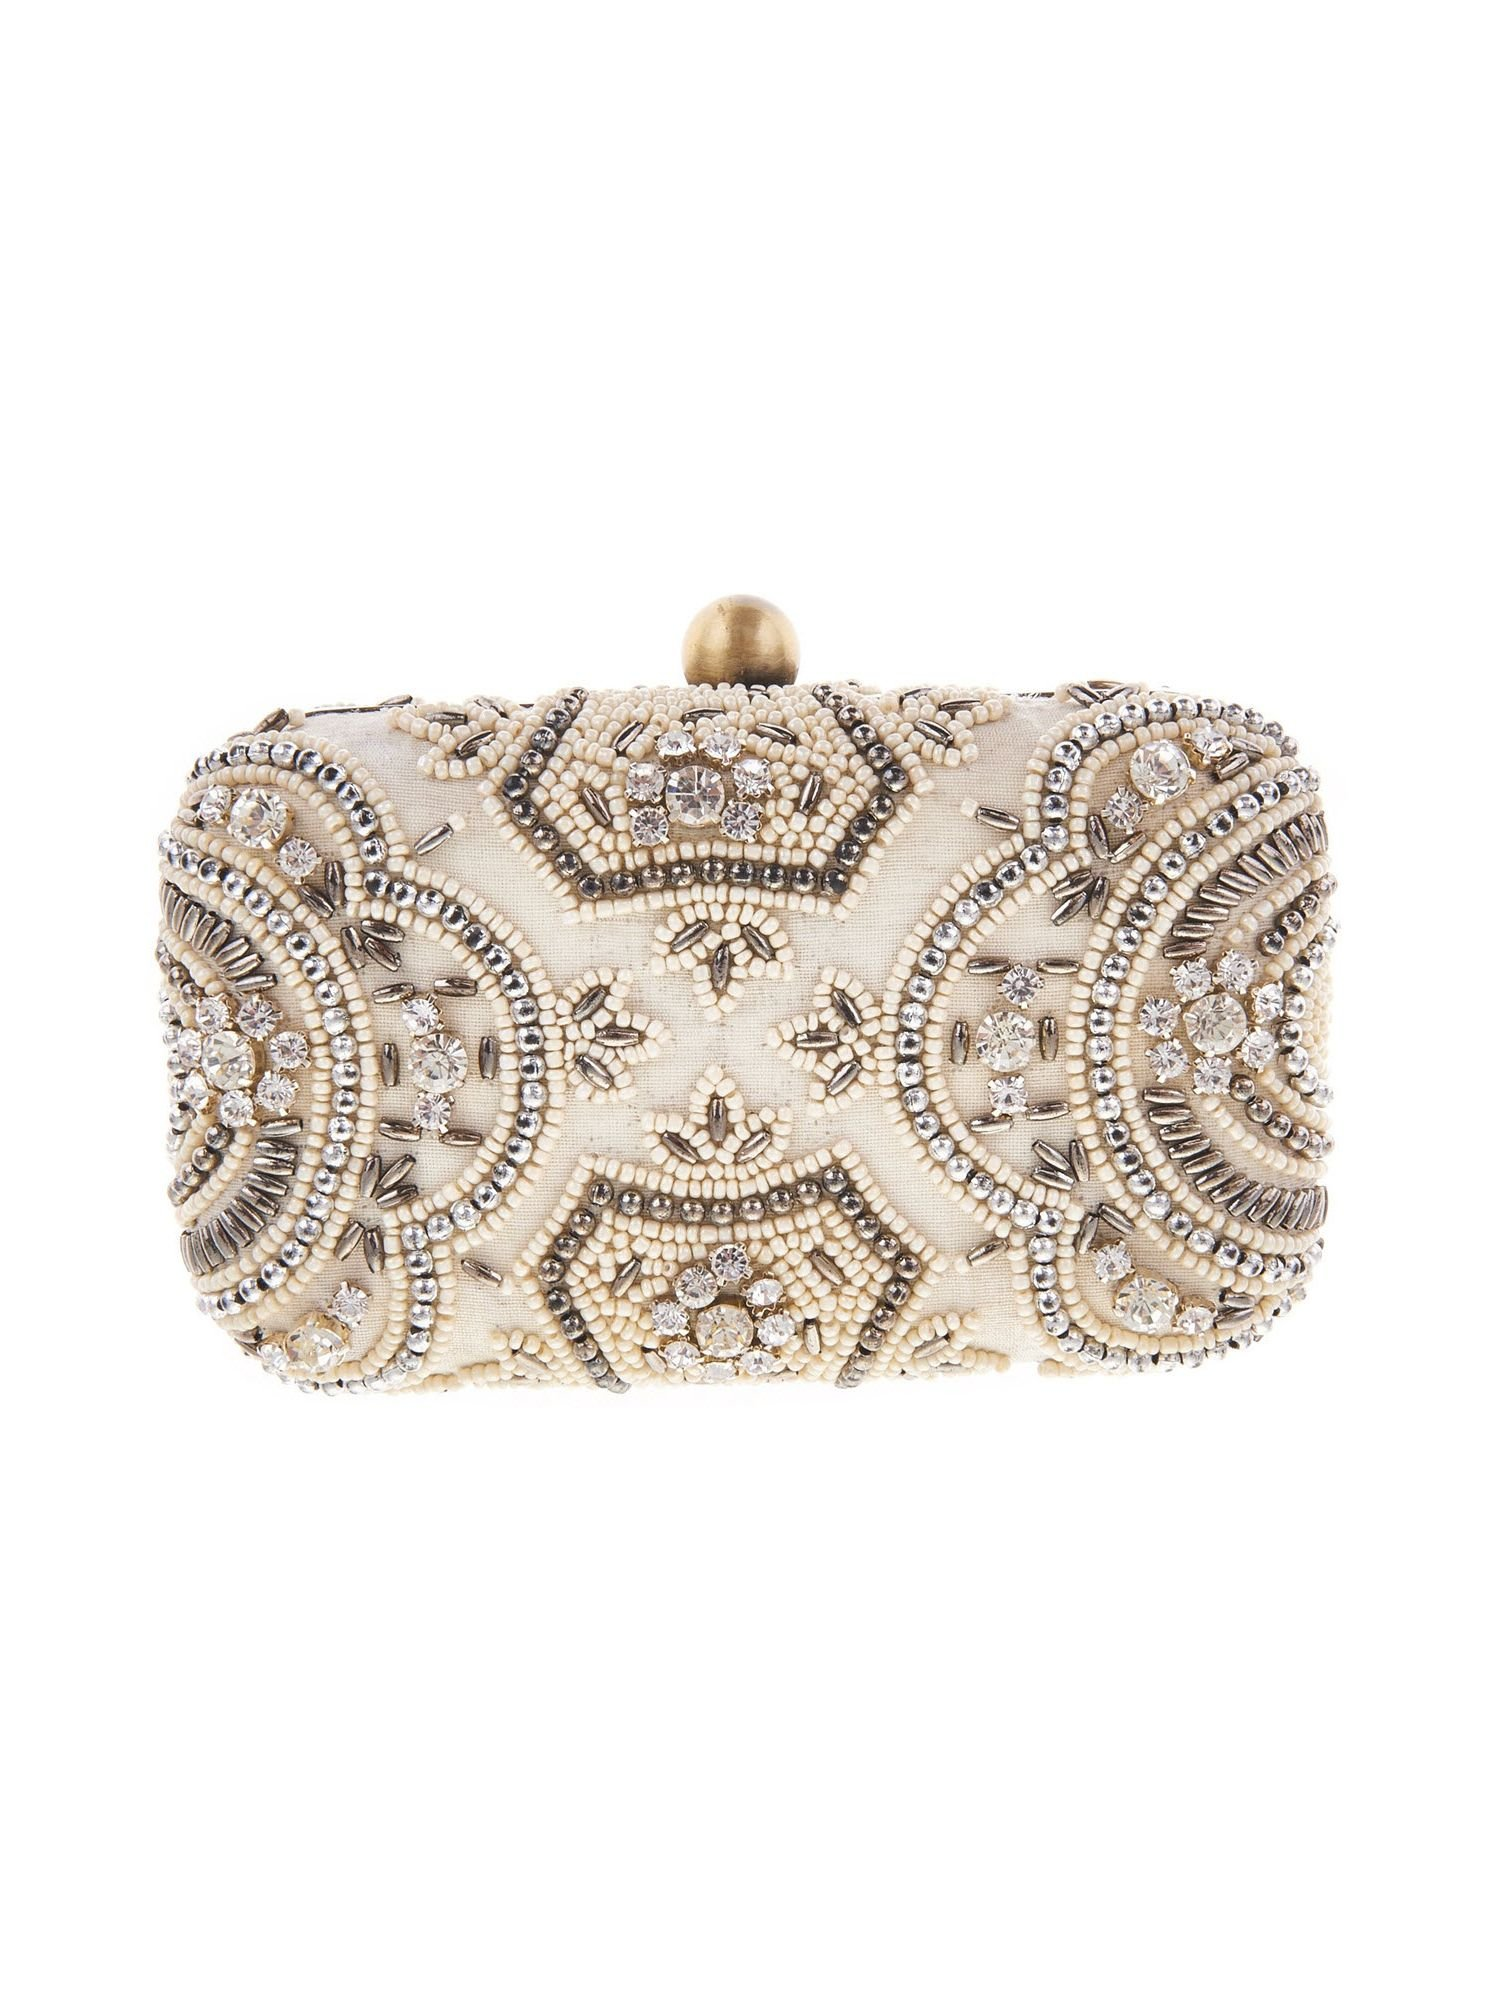 From St Xavier Zoey Bridal Beaded Box Clutch, Ivory